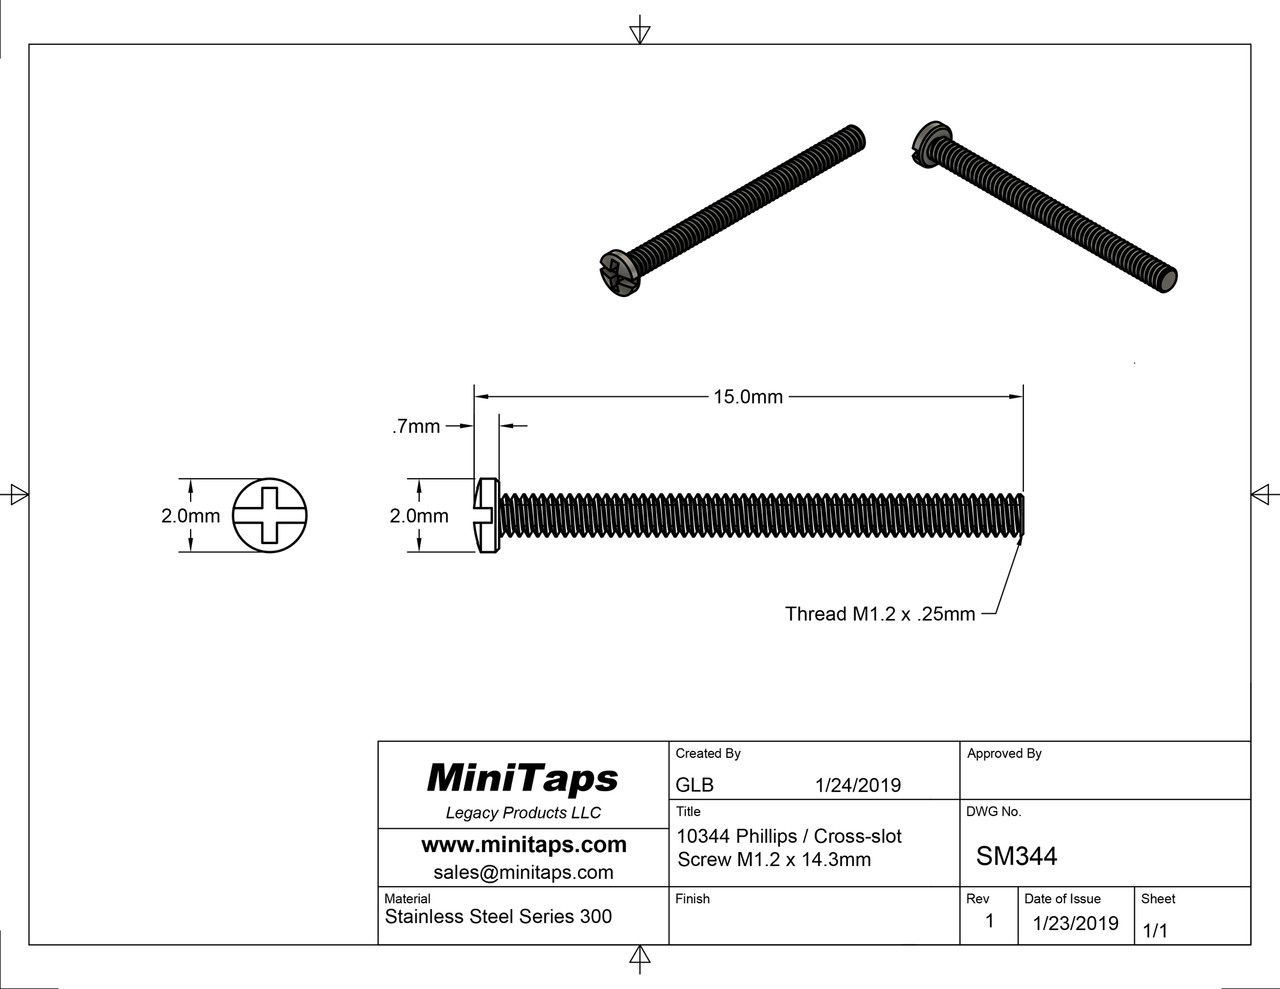 Thread M1.2  also 1.20UNM pitch .25mm Shank length 14.3mm Machine Screw Pan /Cheese Head (modified) with Philips X-Slot drive overall length 15.mm stainless steel in 100 count package, Please note for orders ten units and above  (1,000 pieces) packaged in bulk plastic bag.